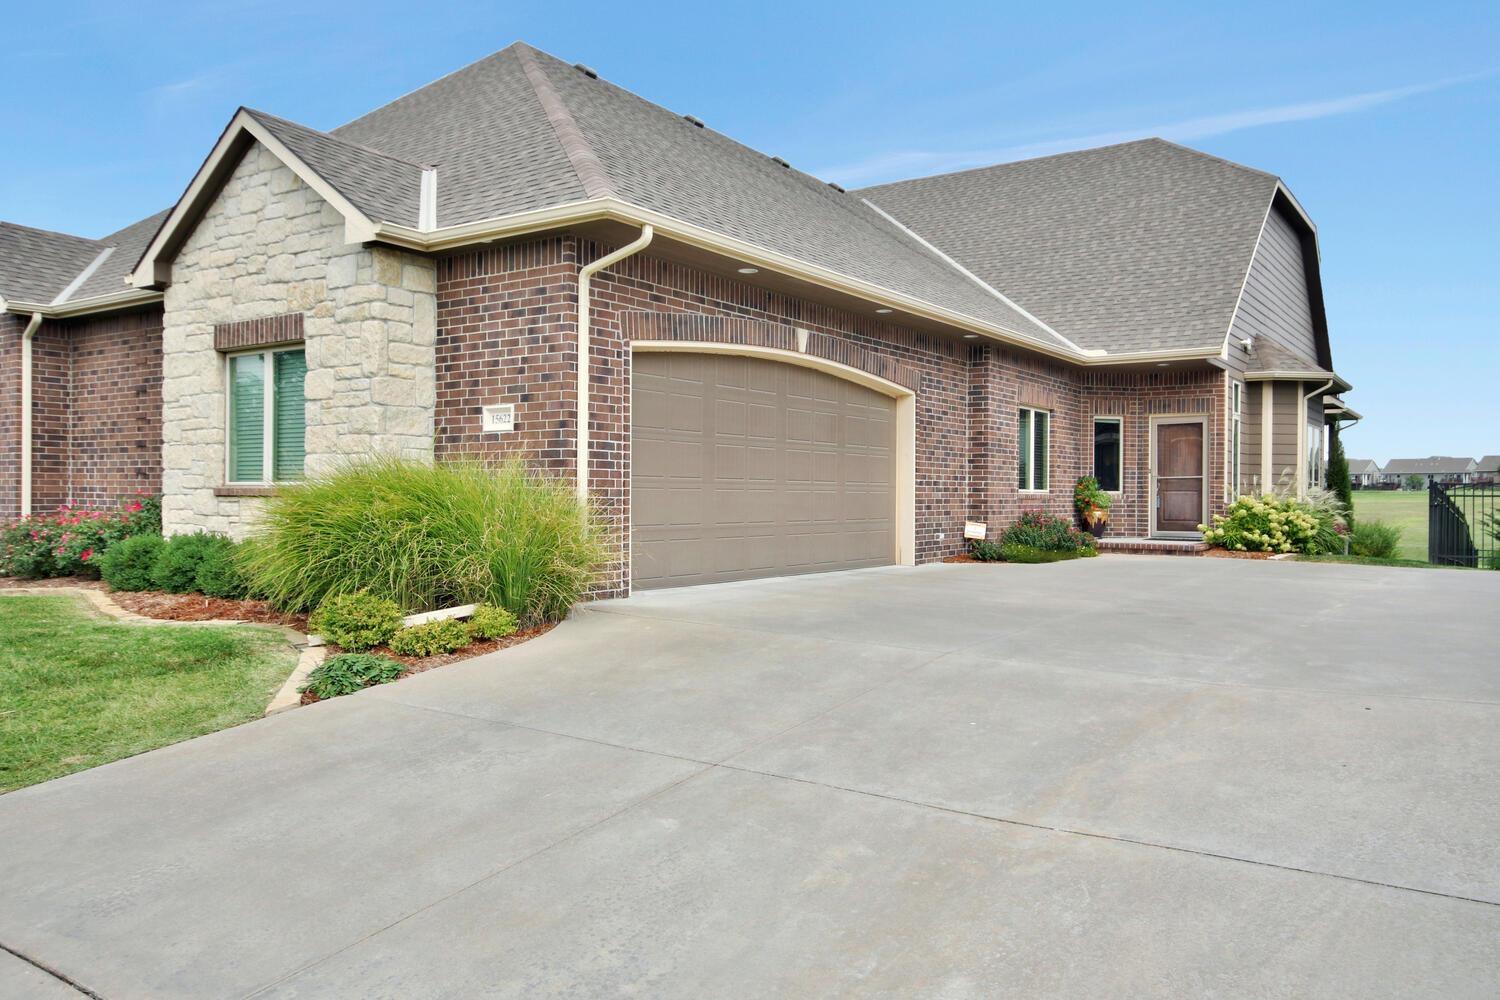 Welcome home! This move-in ready 3 BR, 3 BA Villa is perfectly situated, with an East-facing backyar